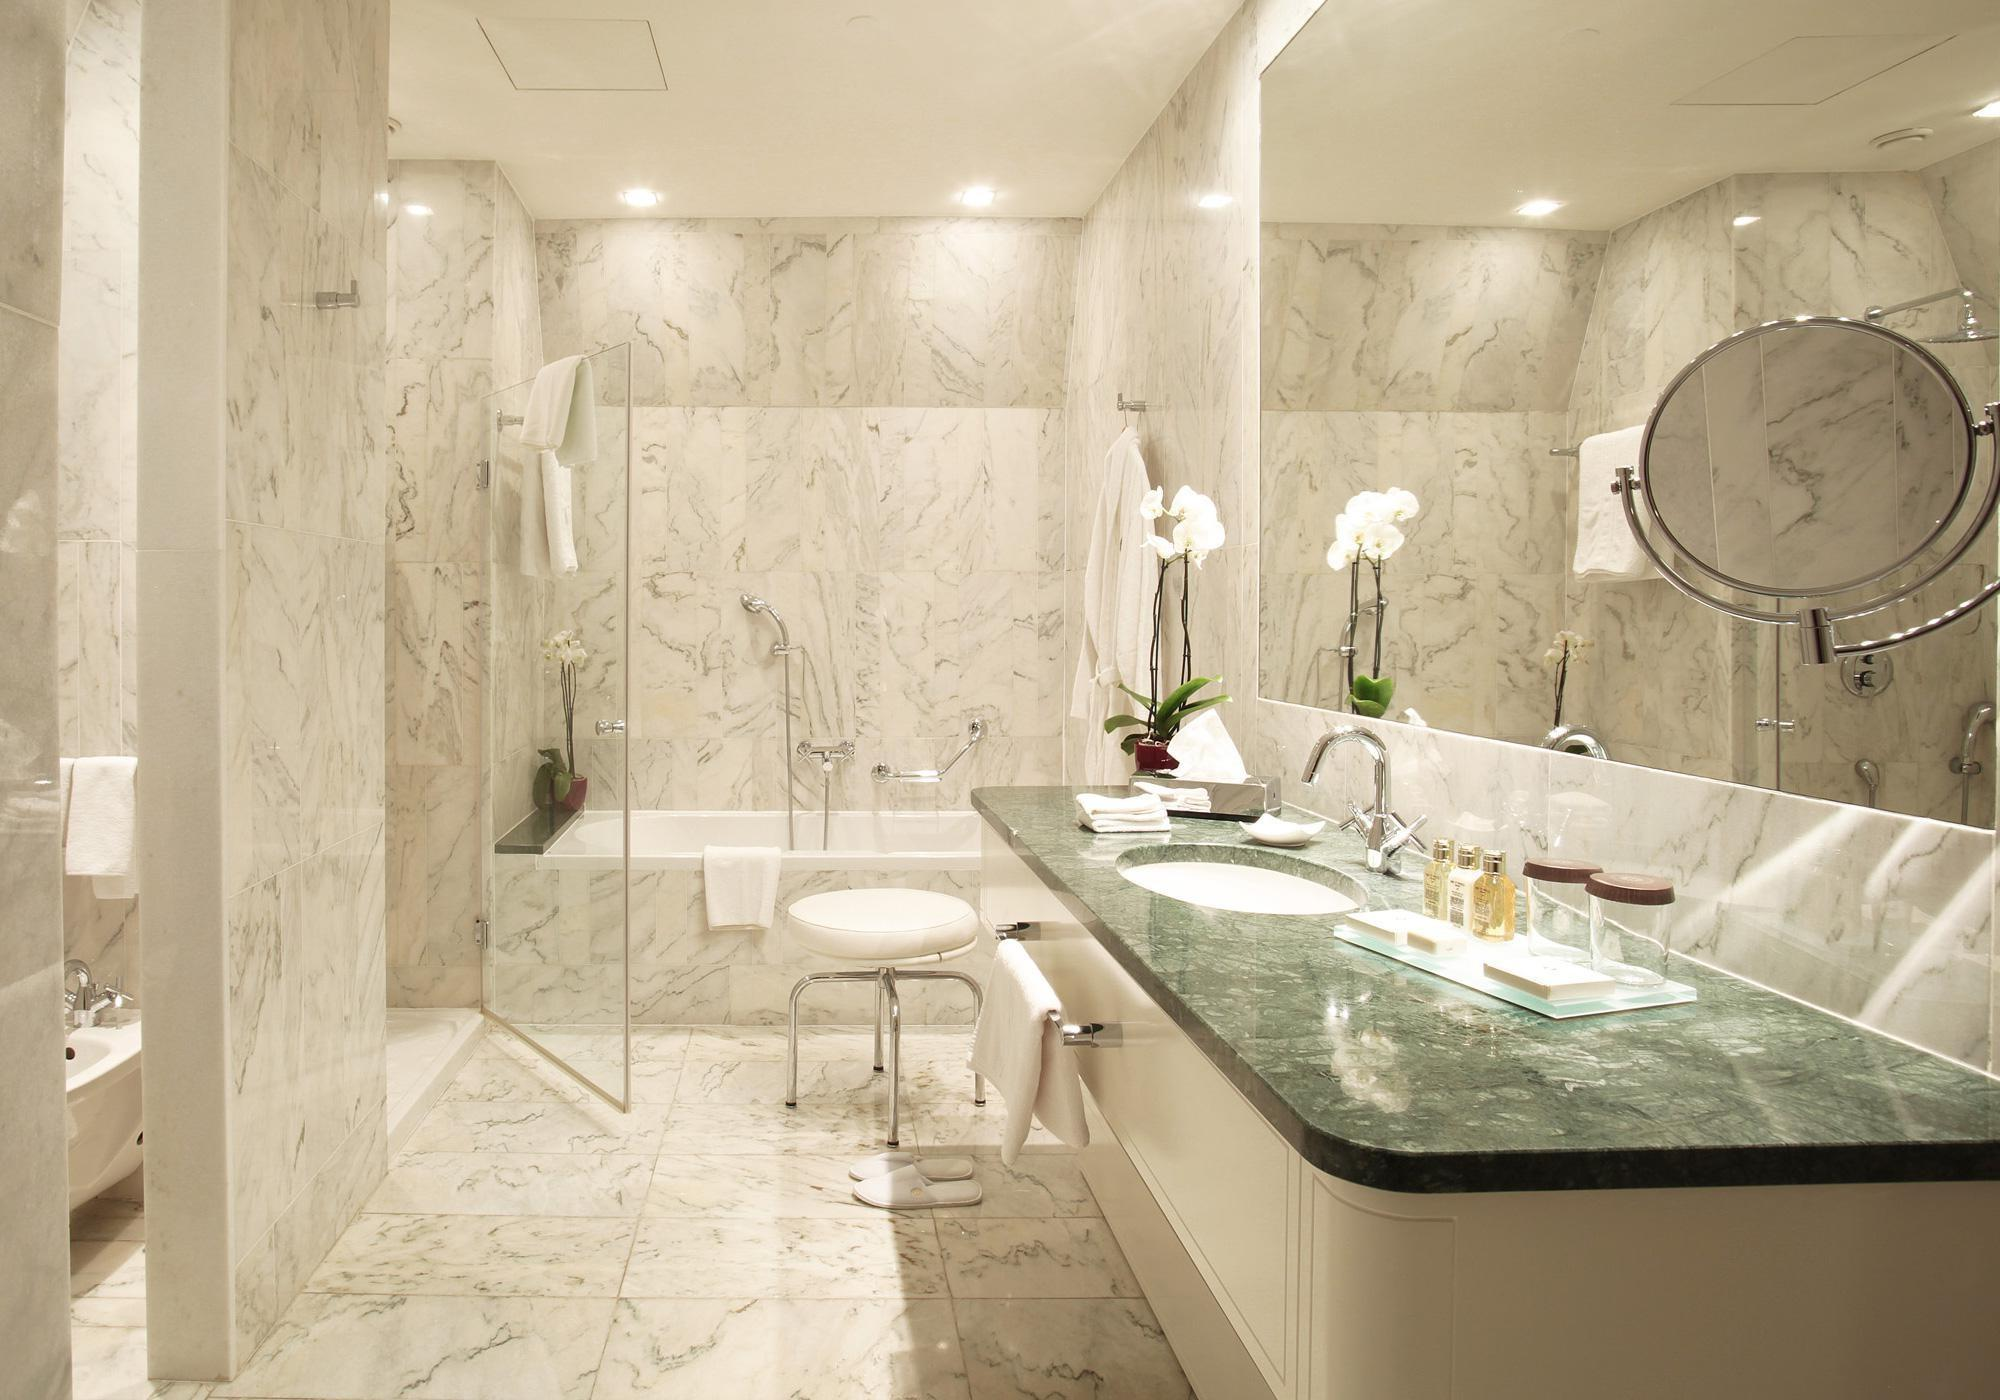 6 High-End Design Additions For Luxury Bathrooms | My Decorative